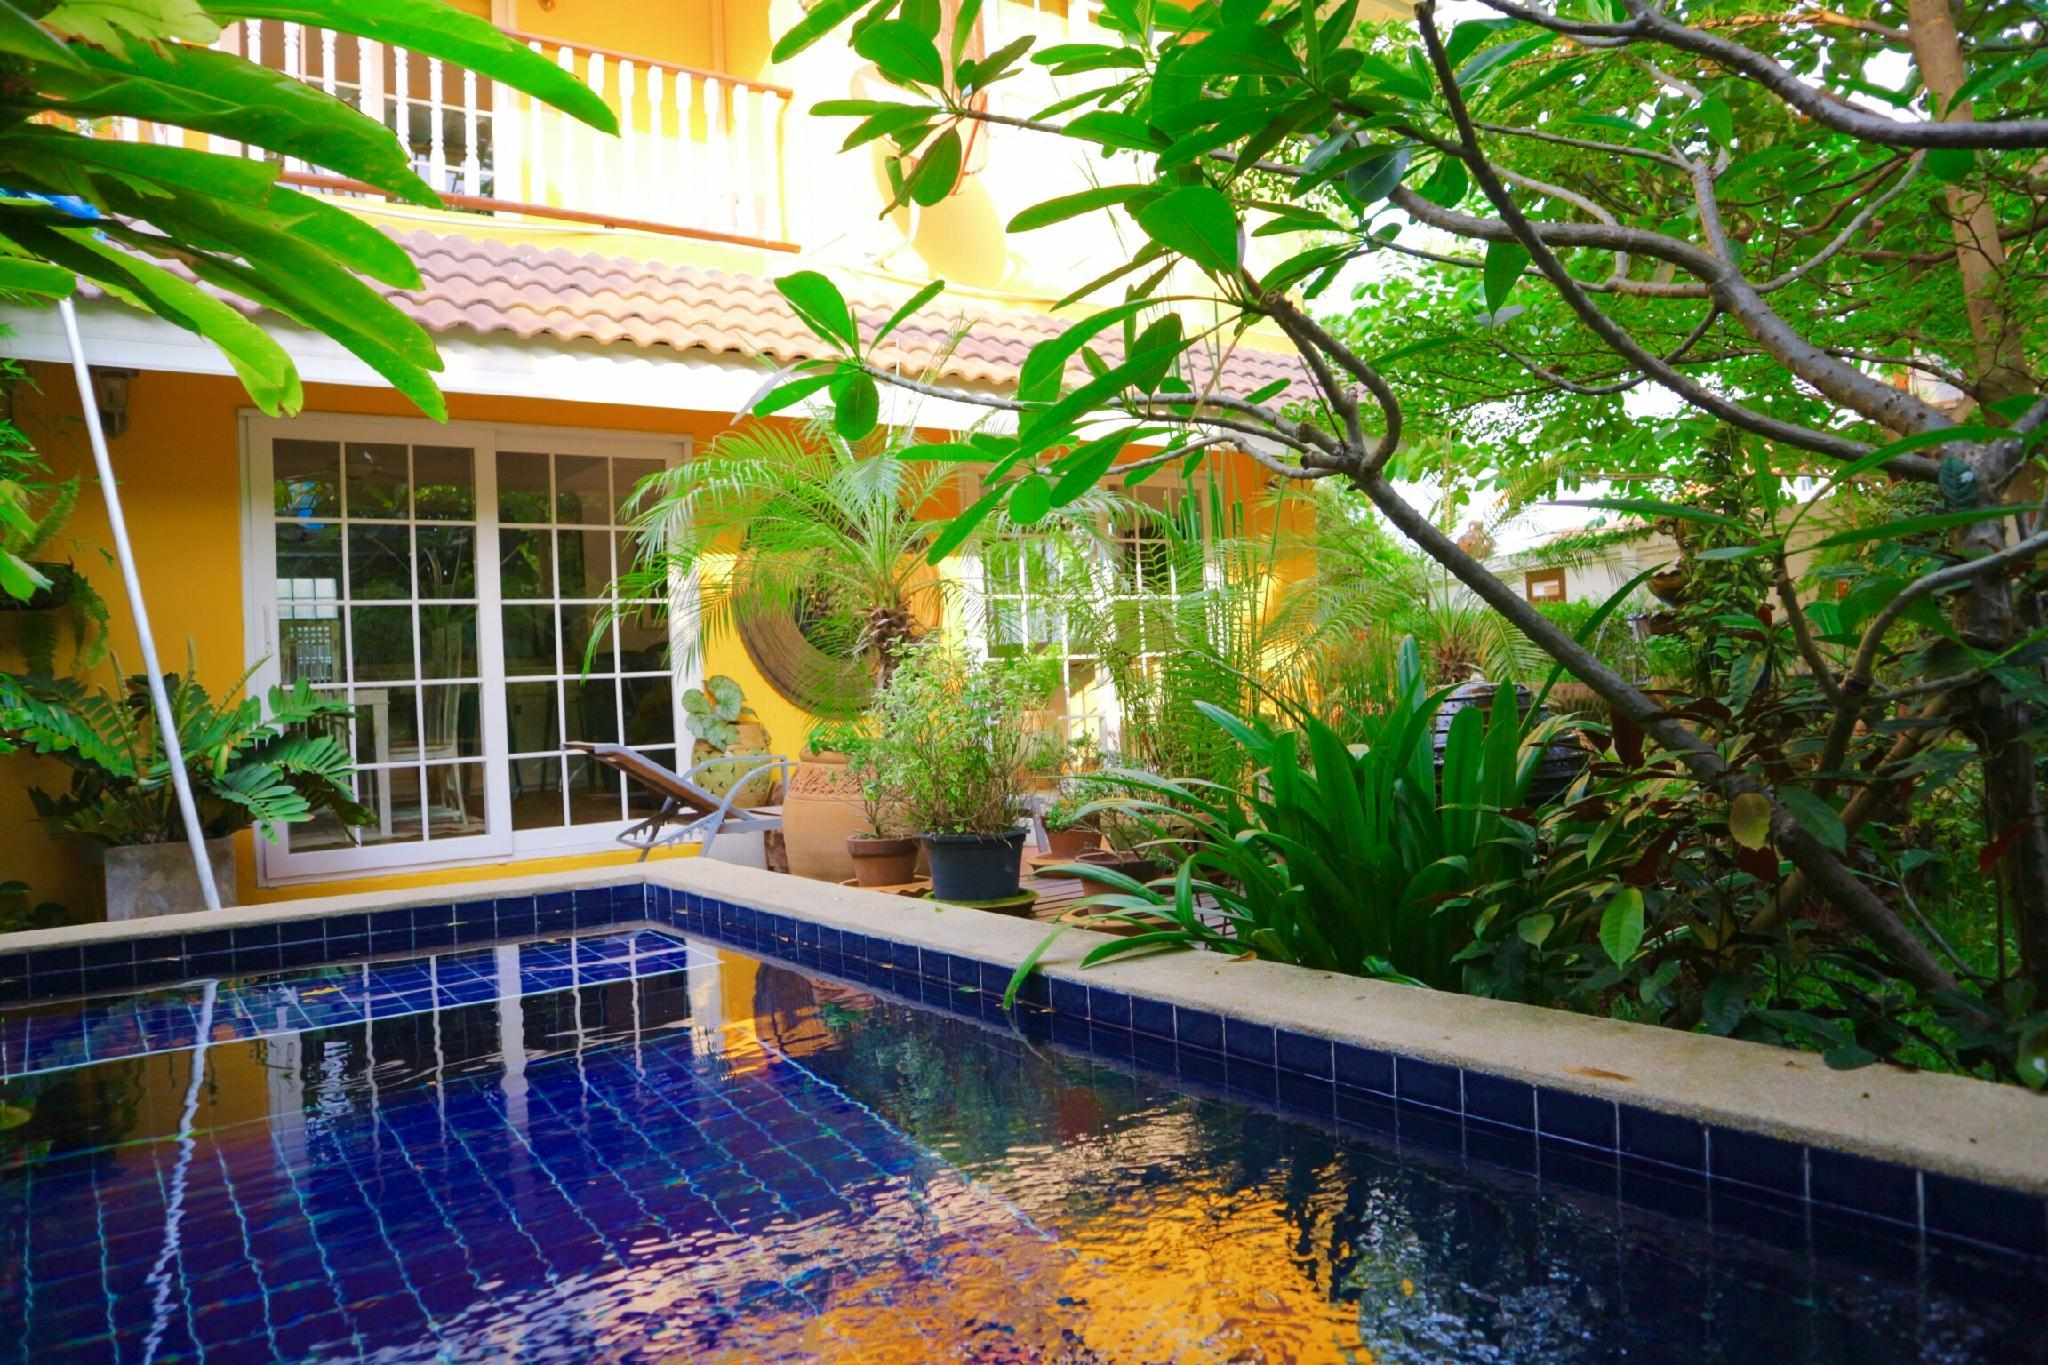 Pool garden villa walk to old town+night market,Pool garden villa walk to old town+night market